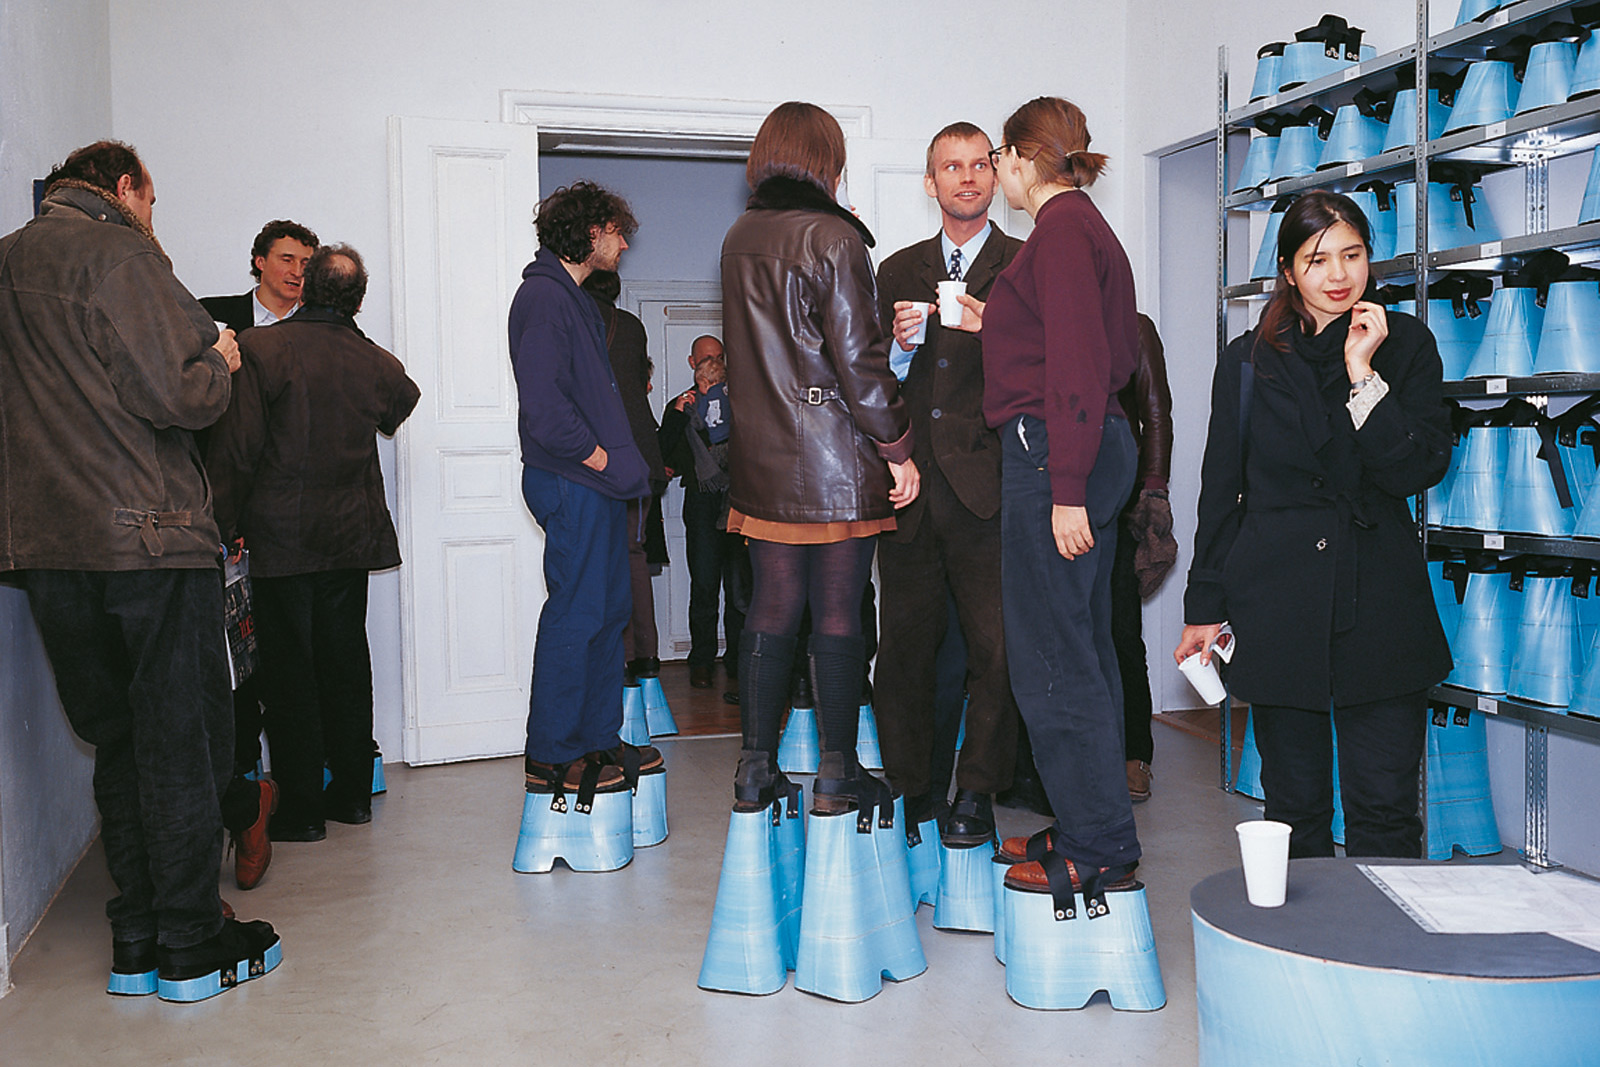 installation with plateau-shoes to become 2 meter tall, galerie Gebauer berlin